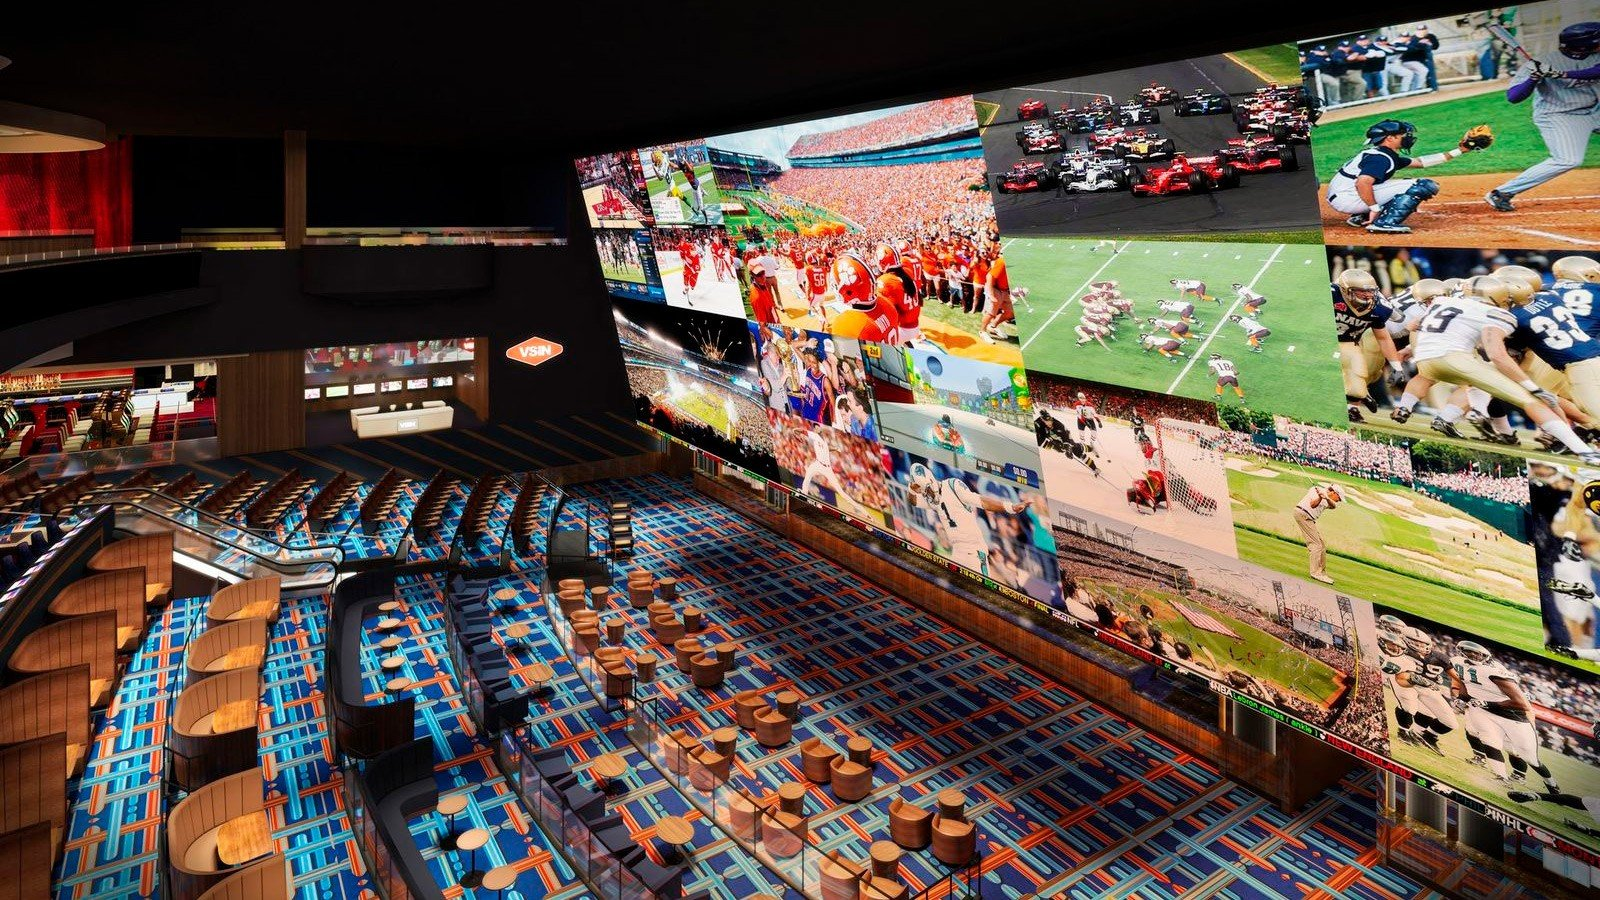 Sports Betting Excise Tax Propose to Repeal by the US Lawmakers